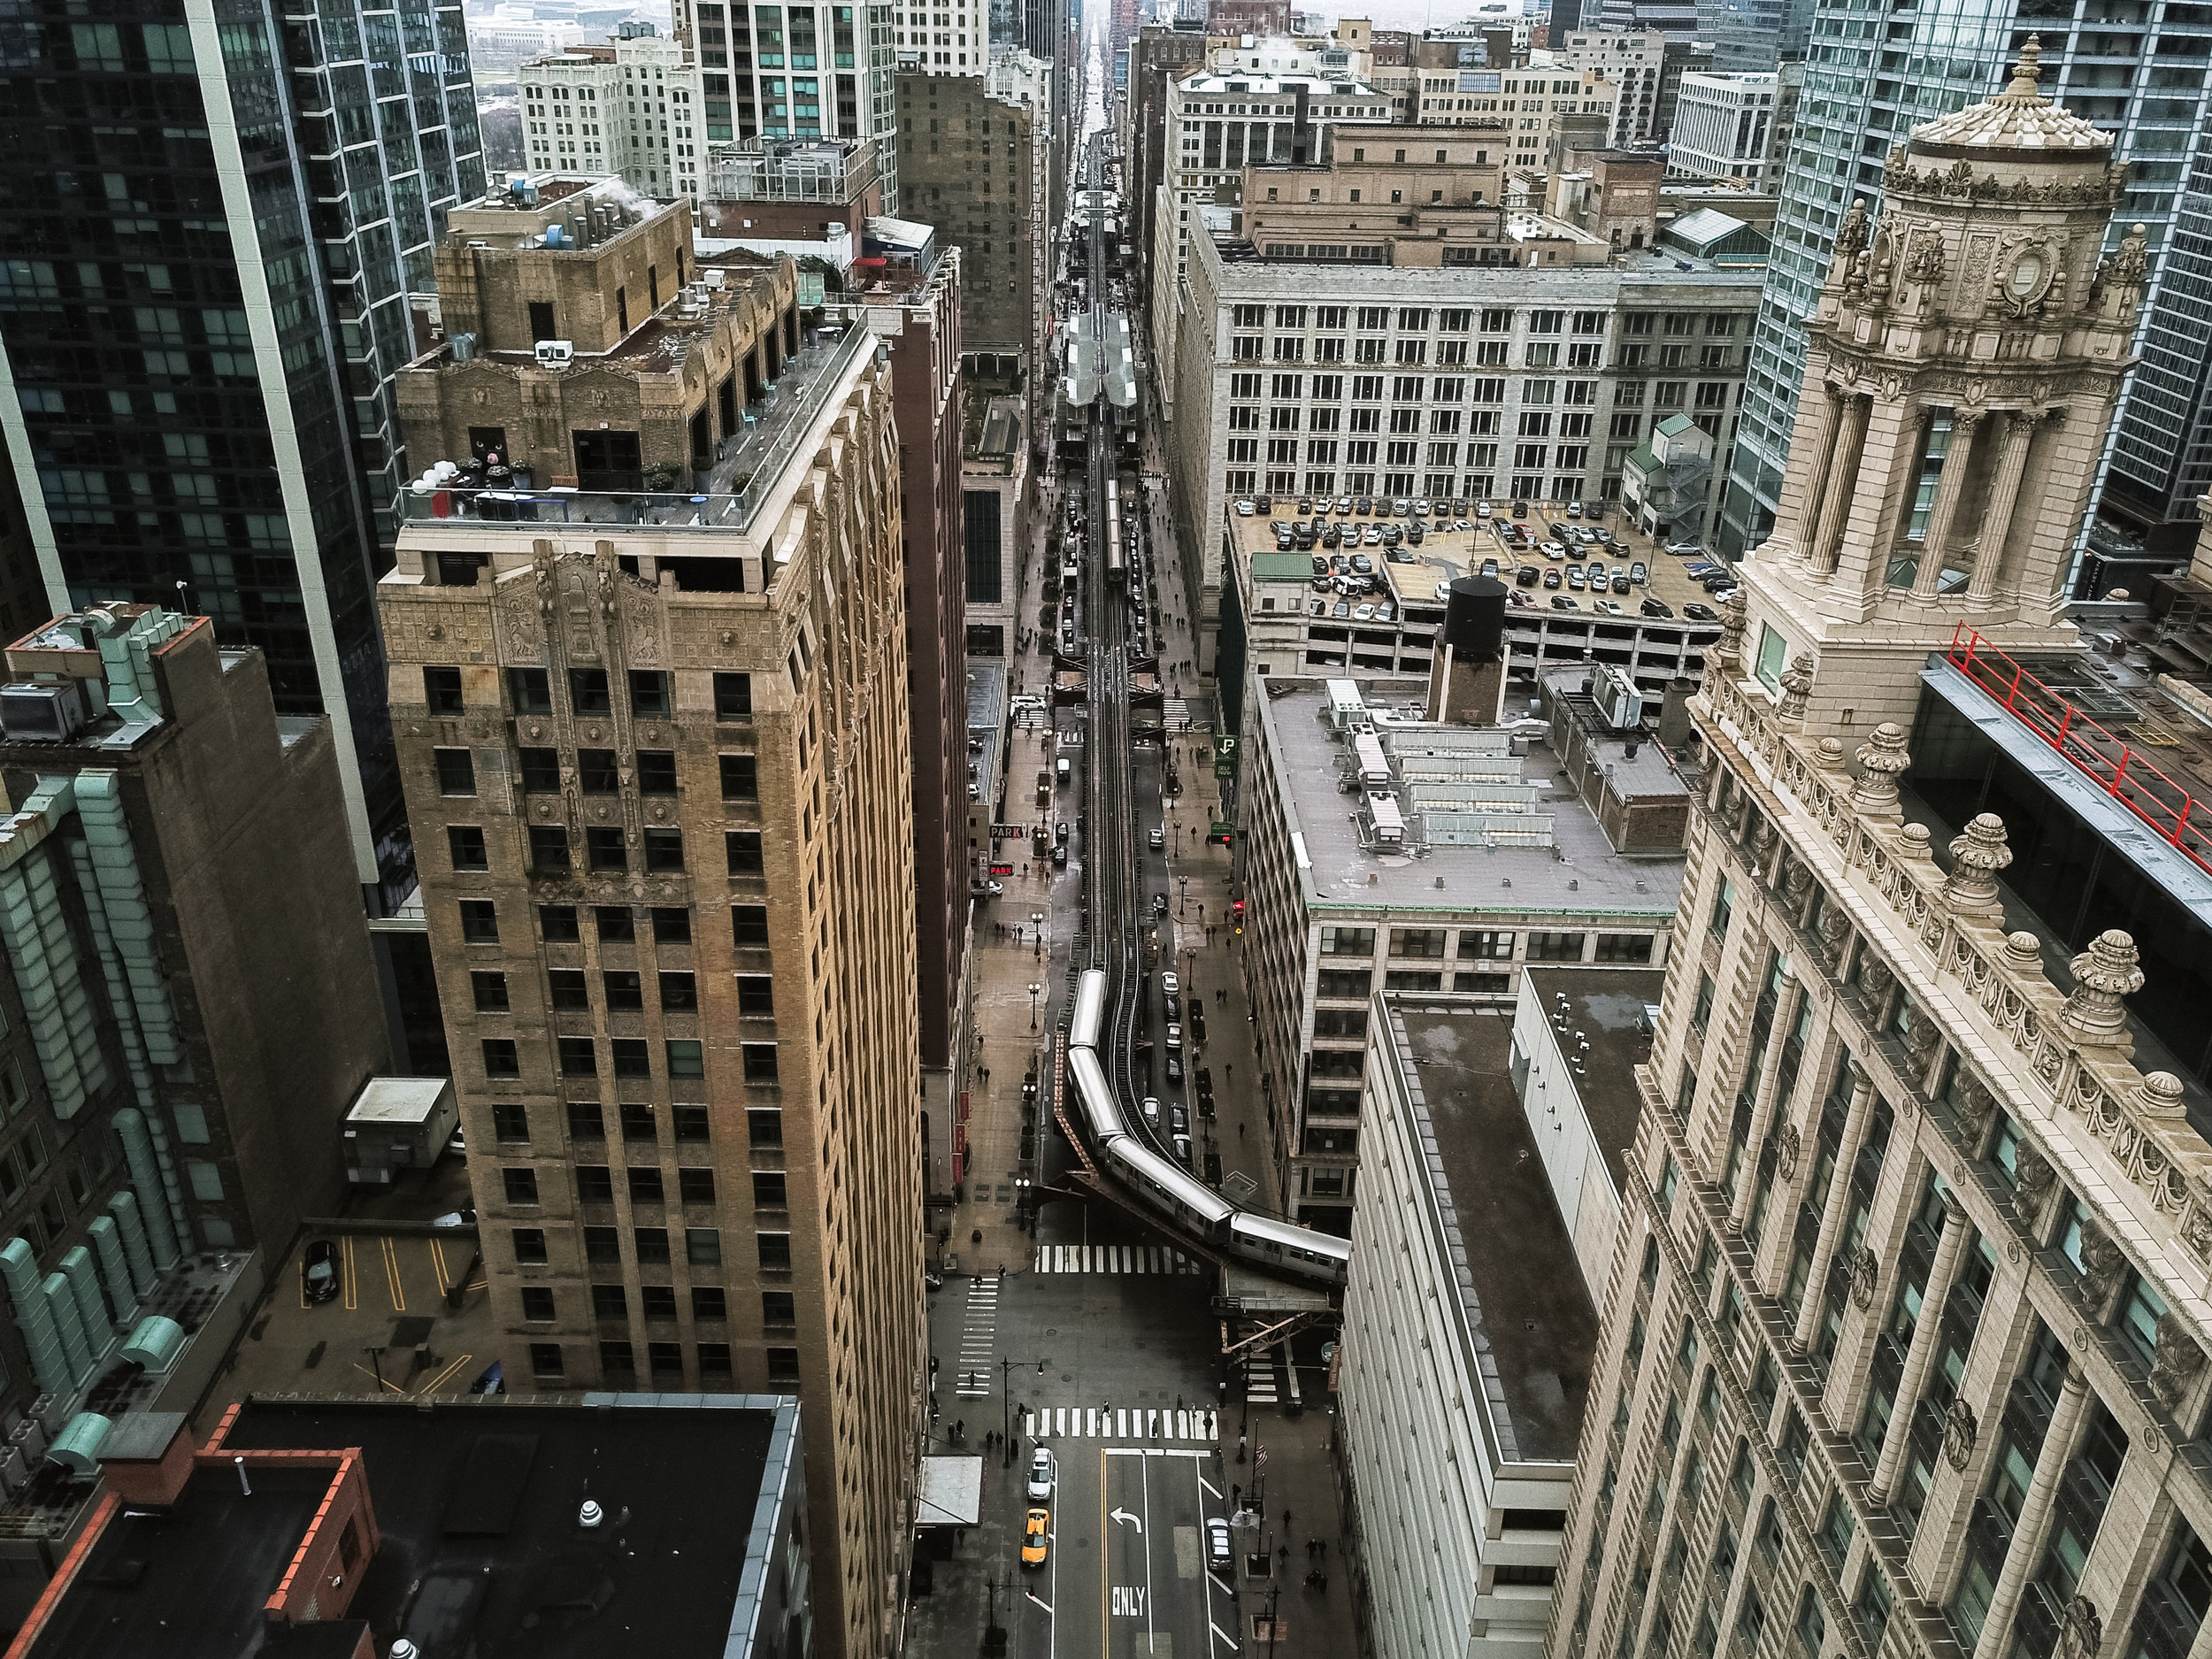 chicago-city-drone-photography.jpg